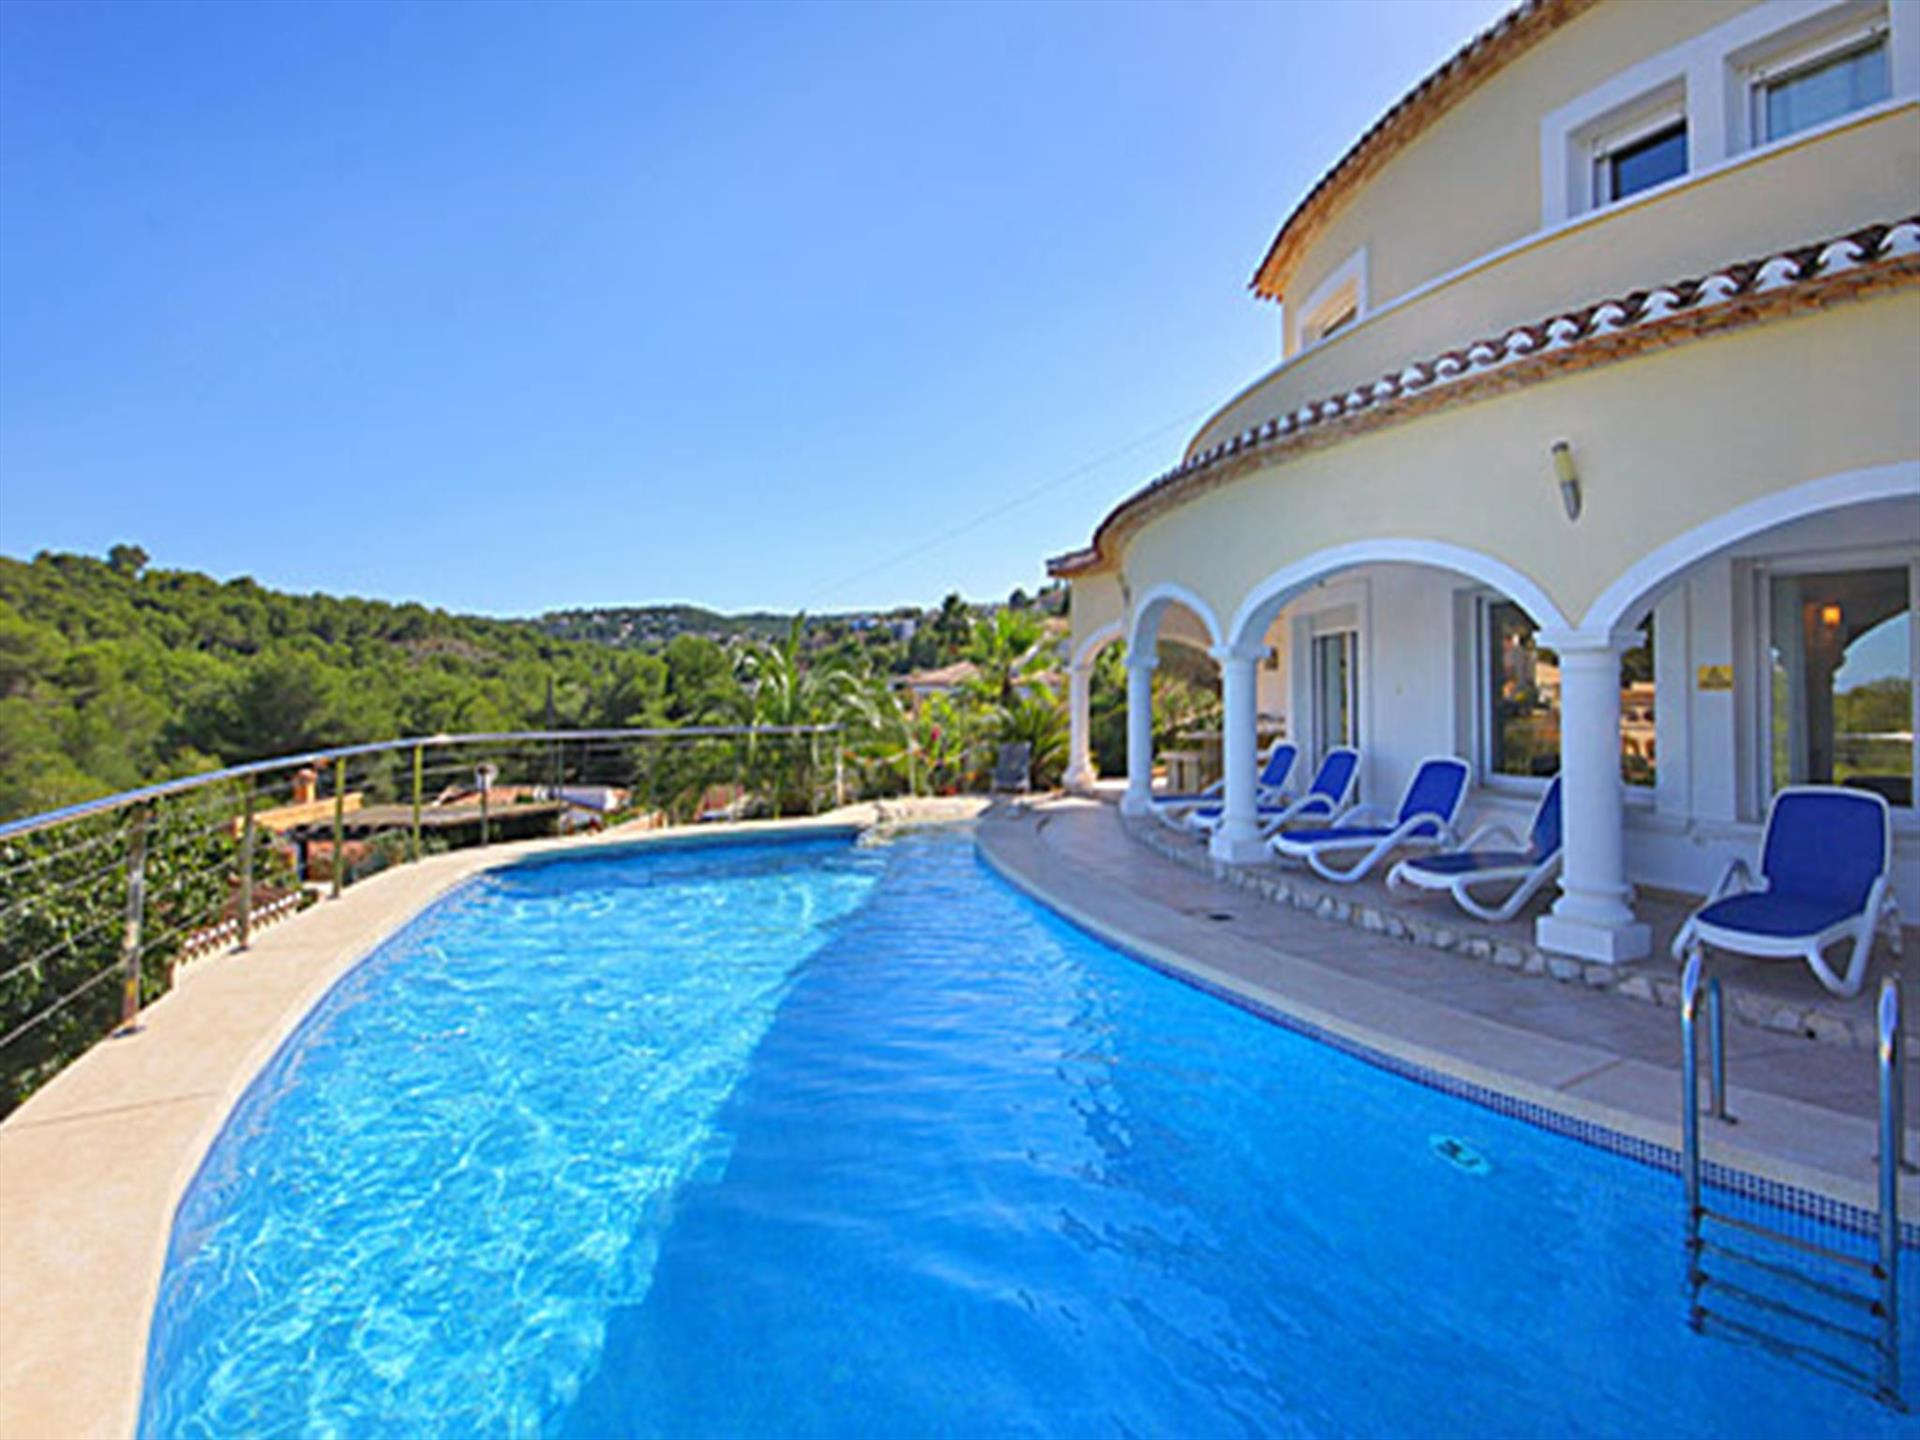 Villa Jarmila 4 pax, Beautiful and comfortable villa in Javea, on the Costa Blanca, Spain  with private pool for 4 persons.....